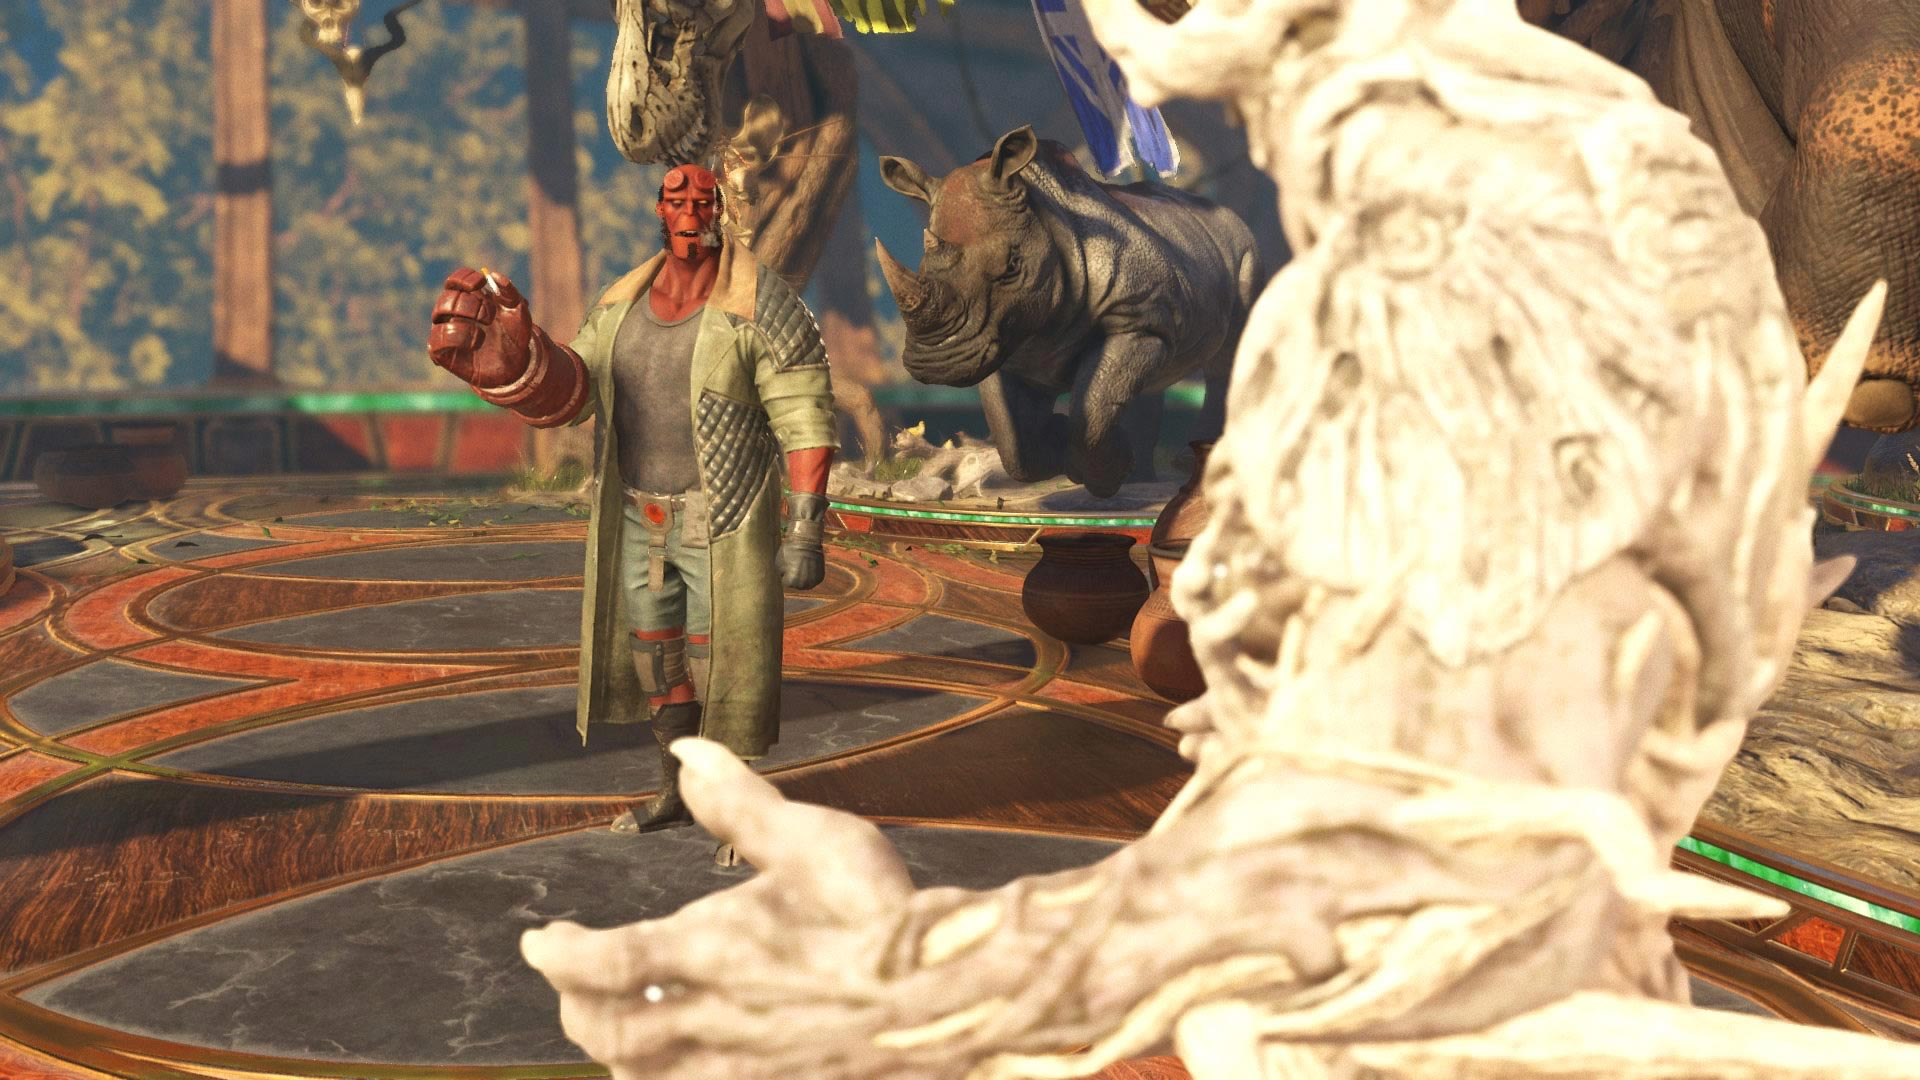 Hellboy in Injustice 2 1 out of 9 image gallery